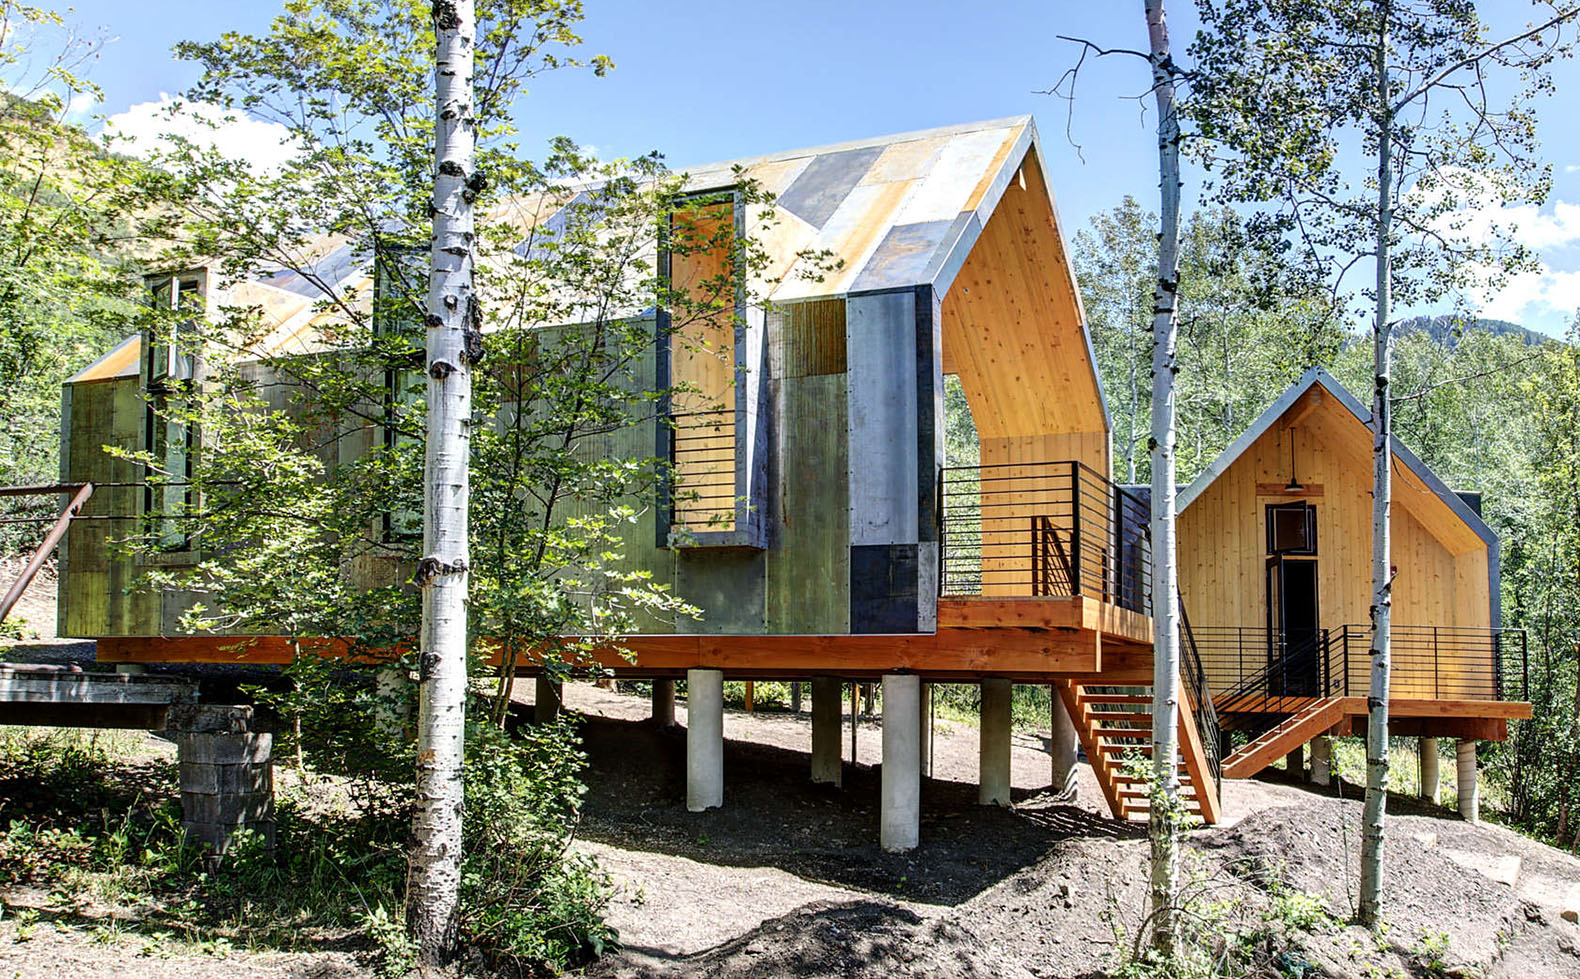 The Girl Scouts of Utah built impressive summer cabins without a single drop of glue